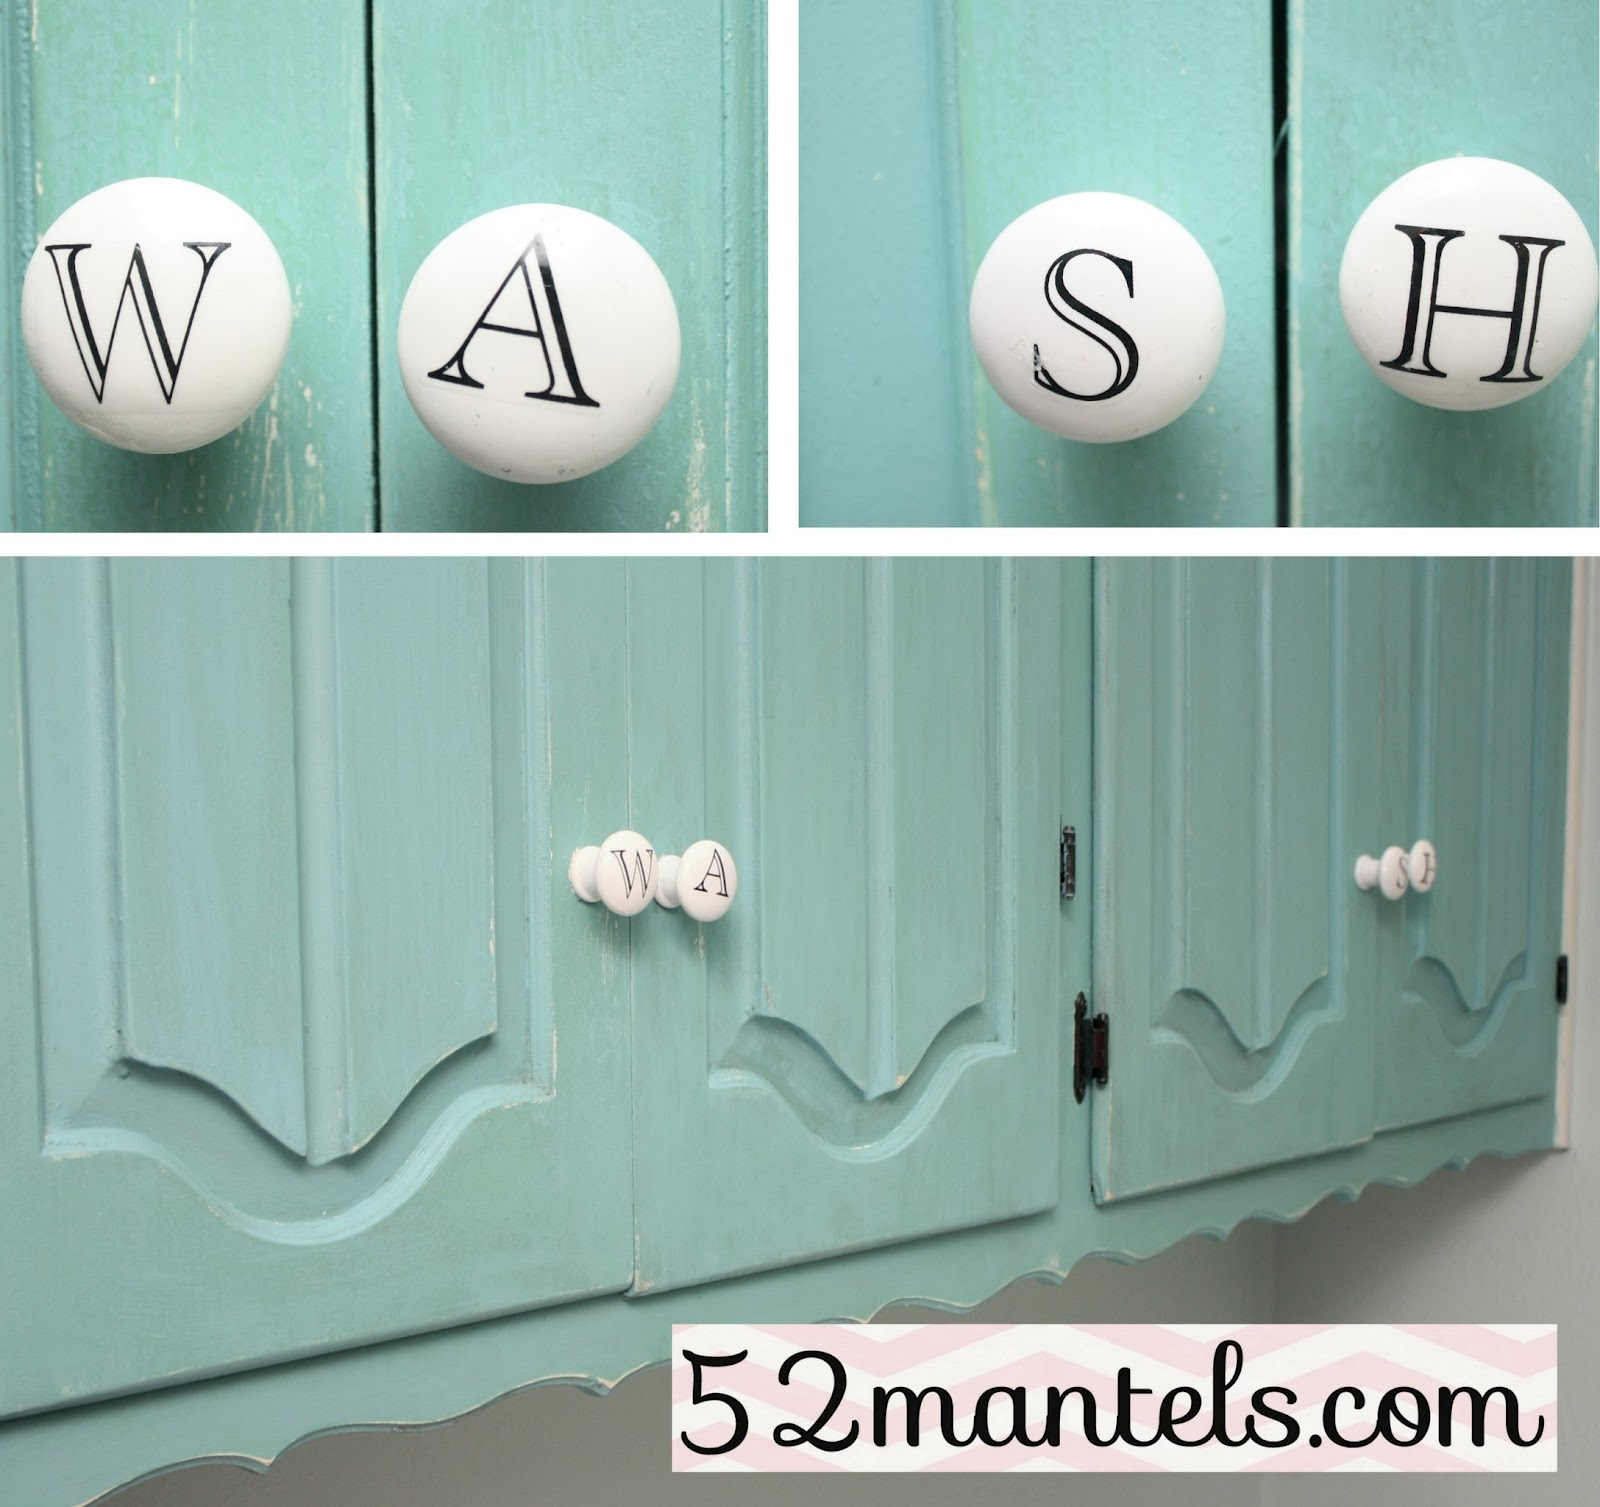 52 mantels laundry room makeover for Laundry room door knobs